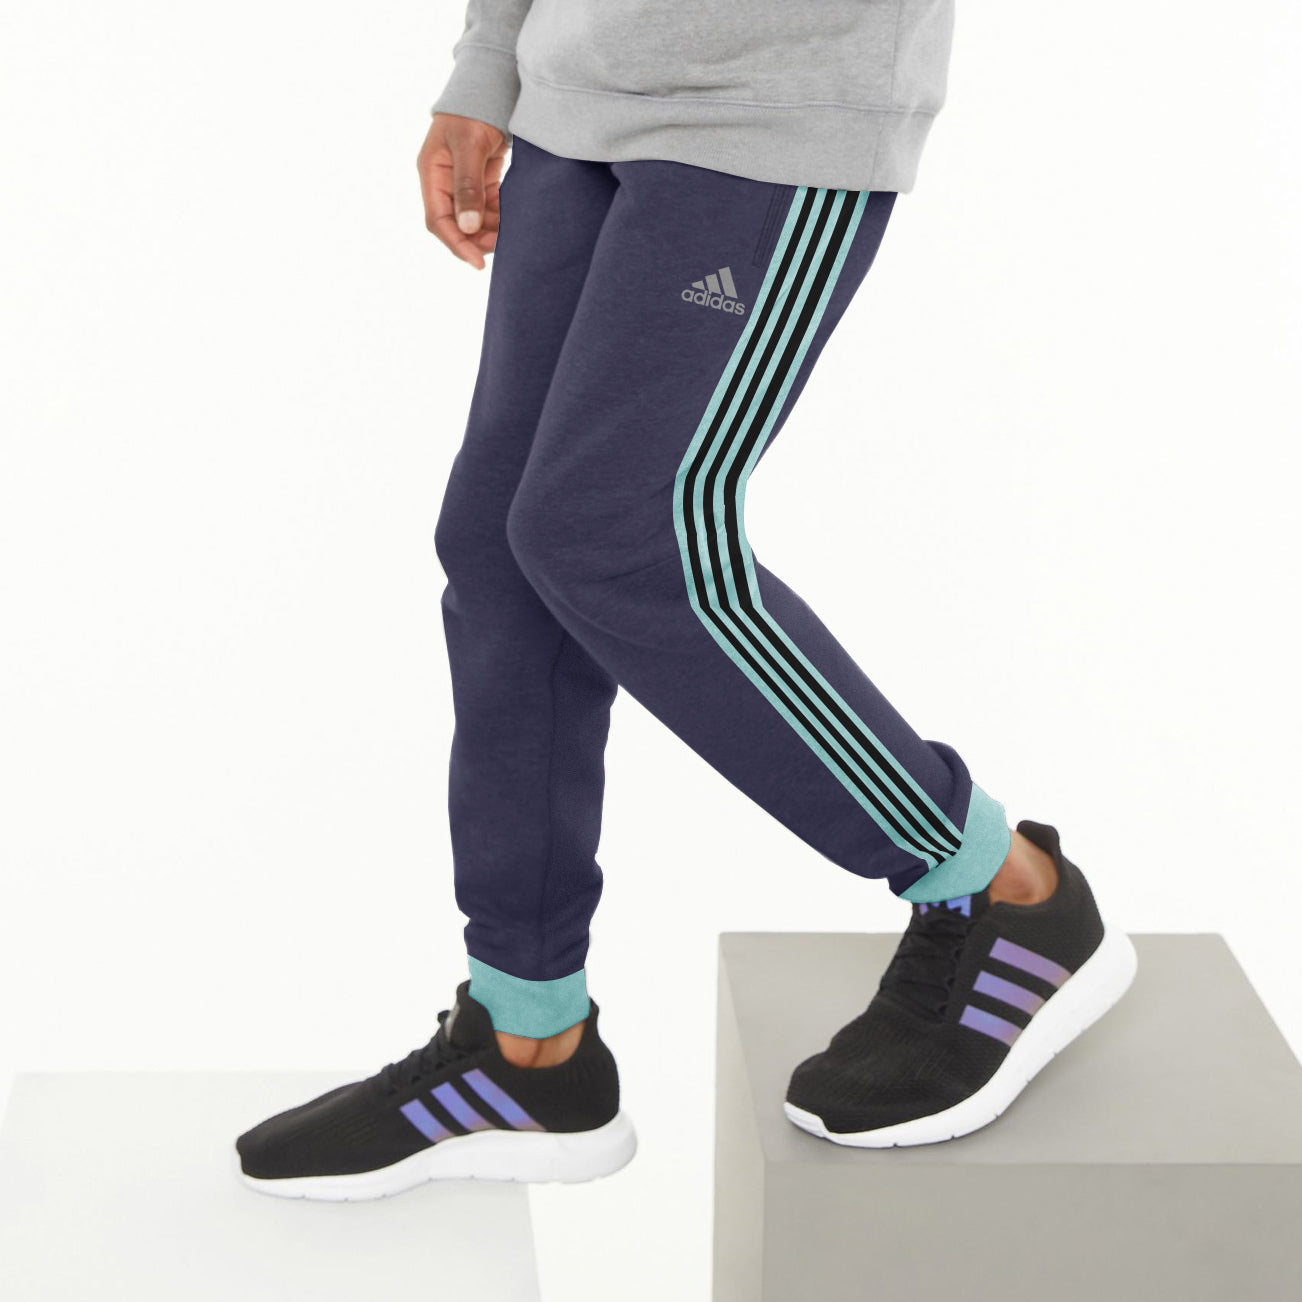 Adidas Single Jersey Jogger Trouser For Kids-Blue Melange With Stripes-NA8635